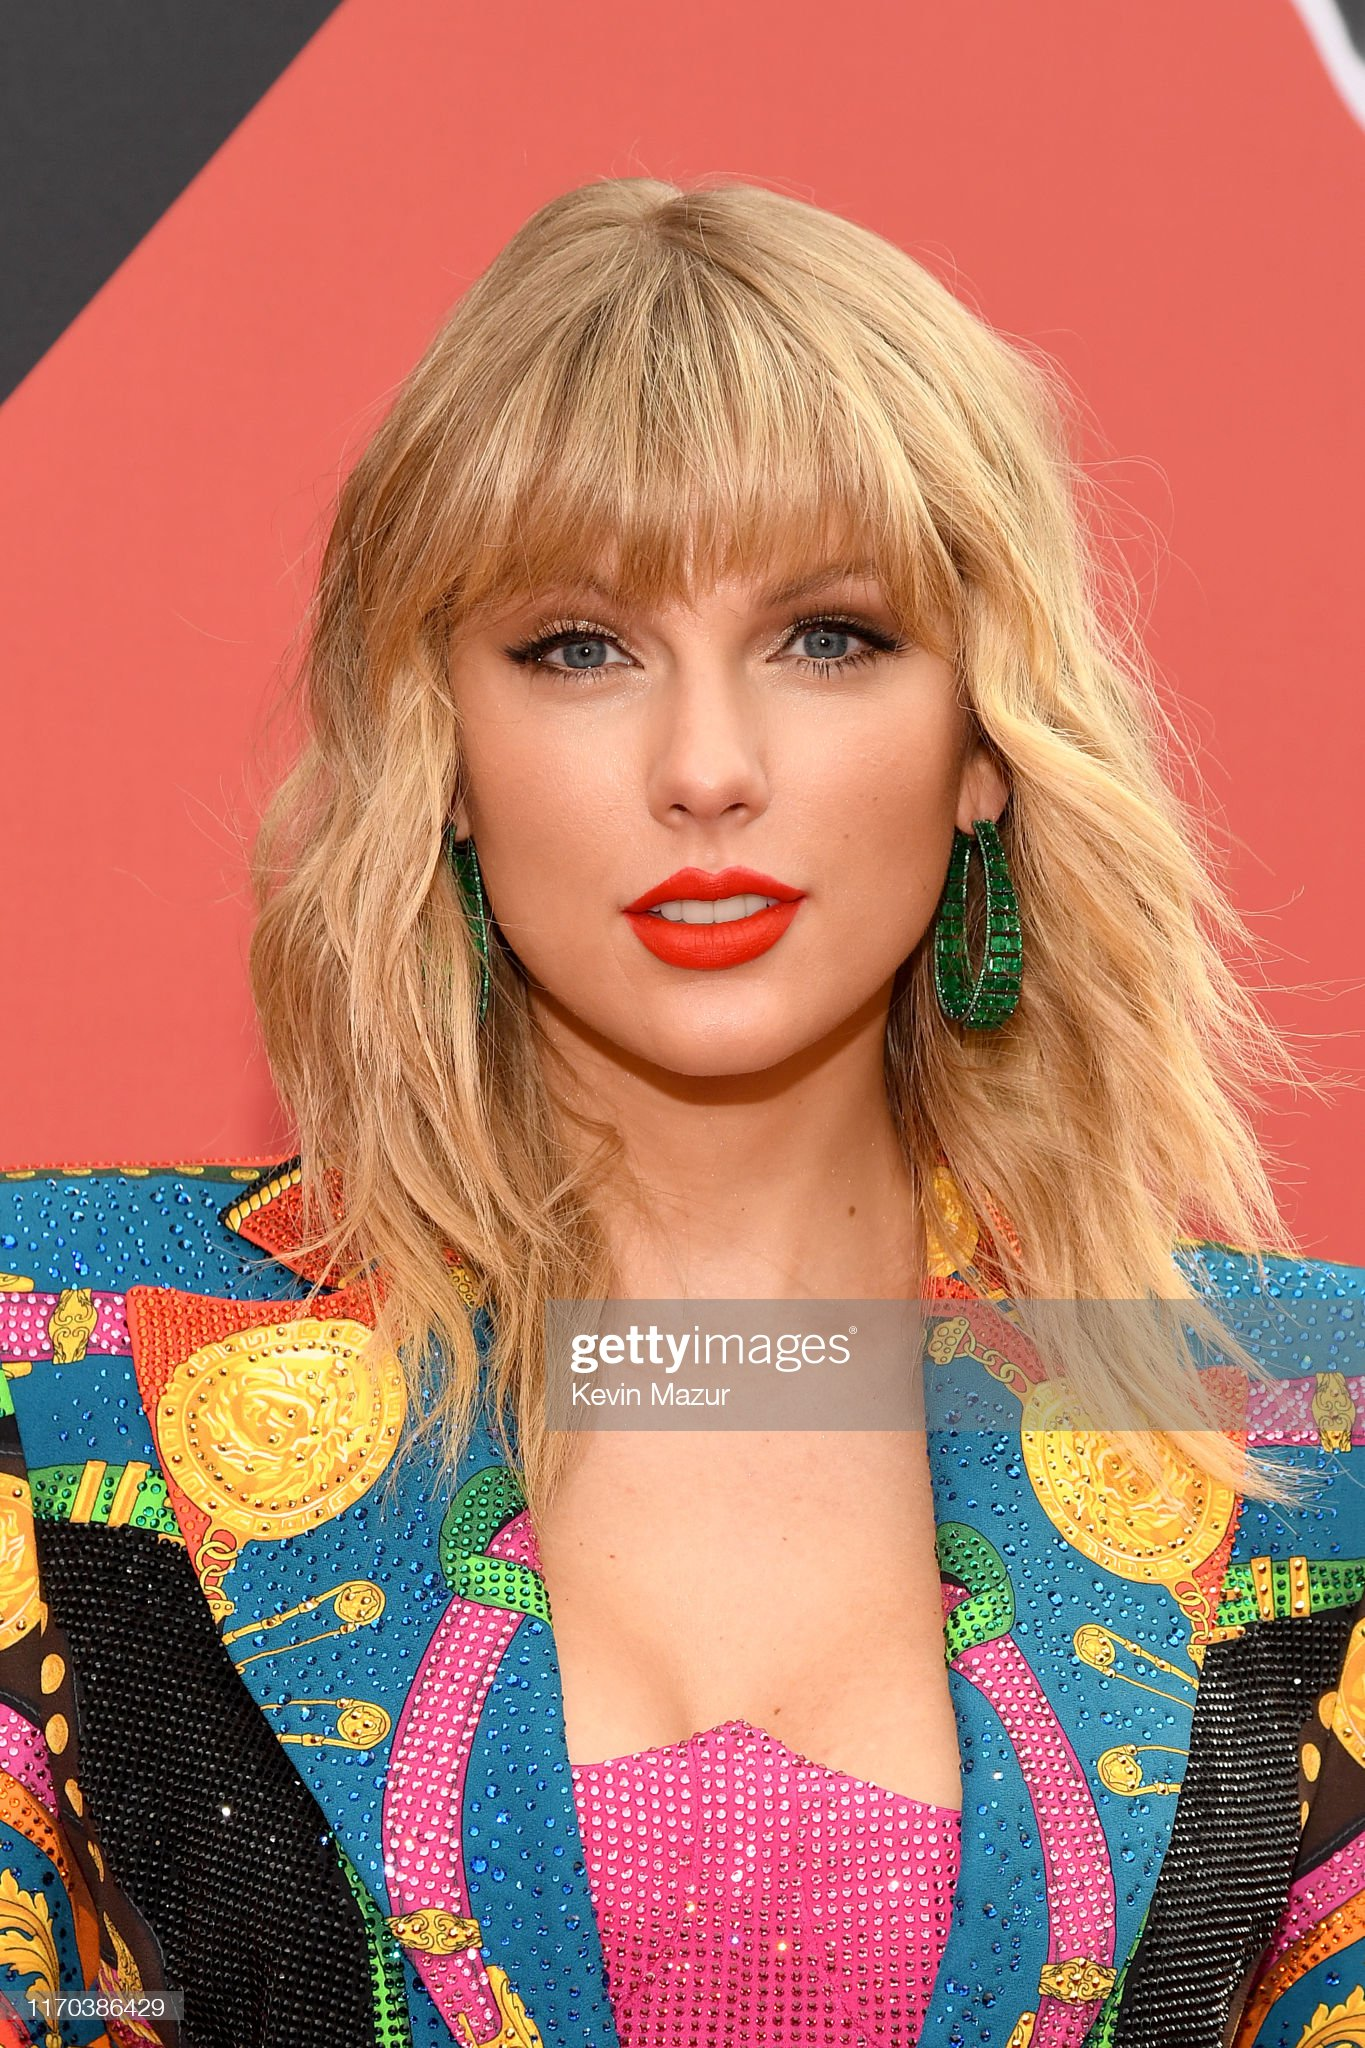 COLOR DE OJOS (clasificación y debate de personas famosas) Taylor-swift-attends-the-2019-mtv-video-music-awards-at-prudential-picture-id1170386429?s=2048x2048